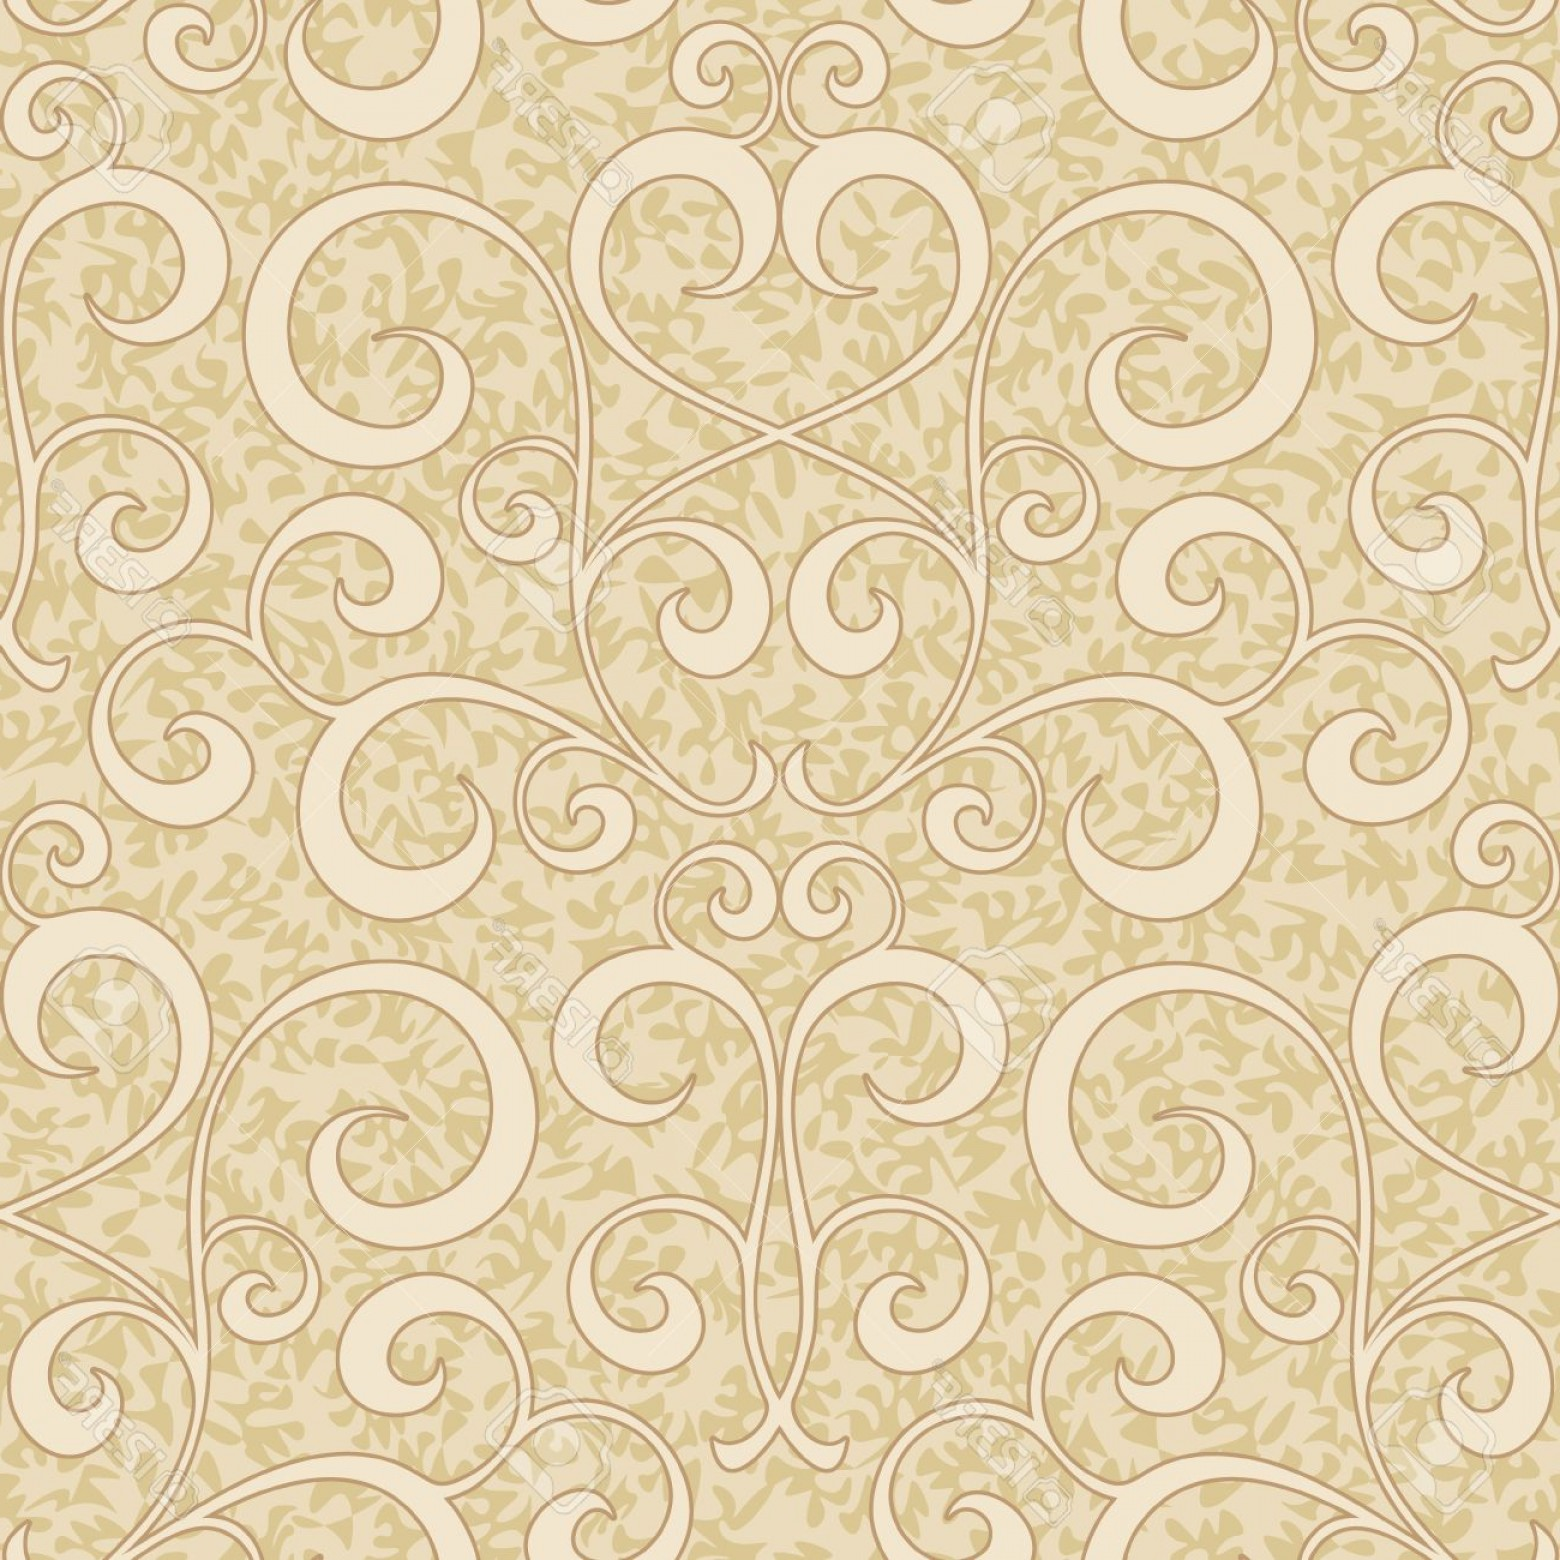 Vector Flourish Backgrounds: Photoabstract Beige Flourish Floral Swirl Seamless Background Pattern